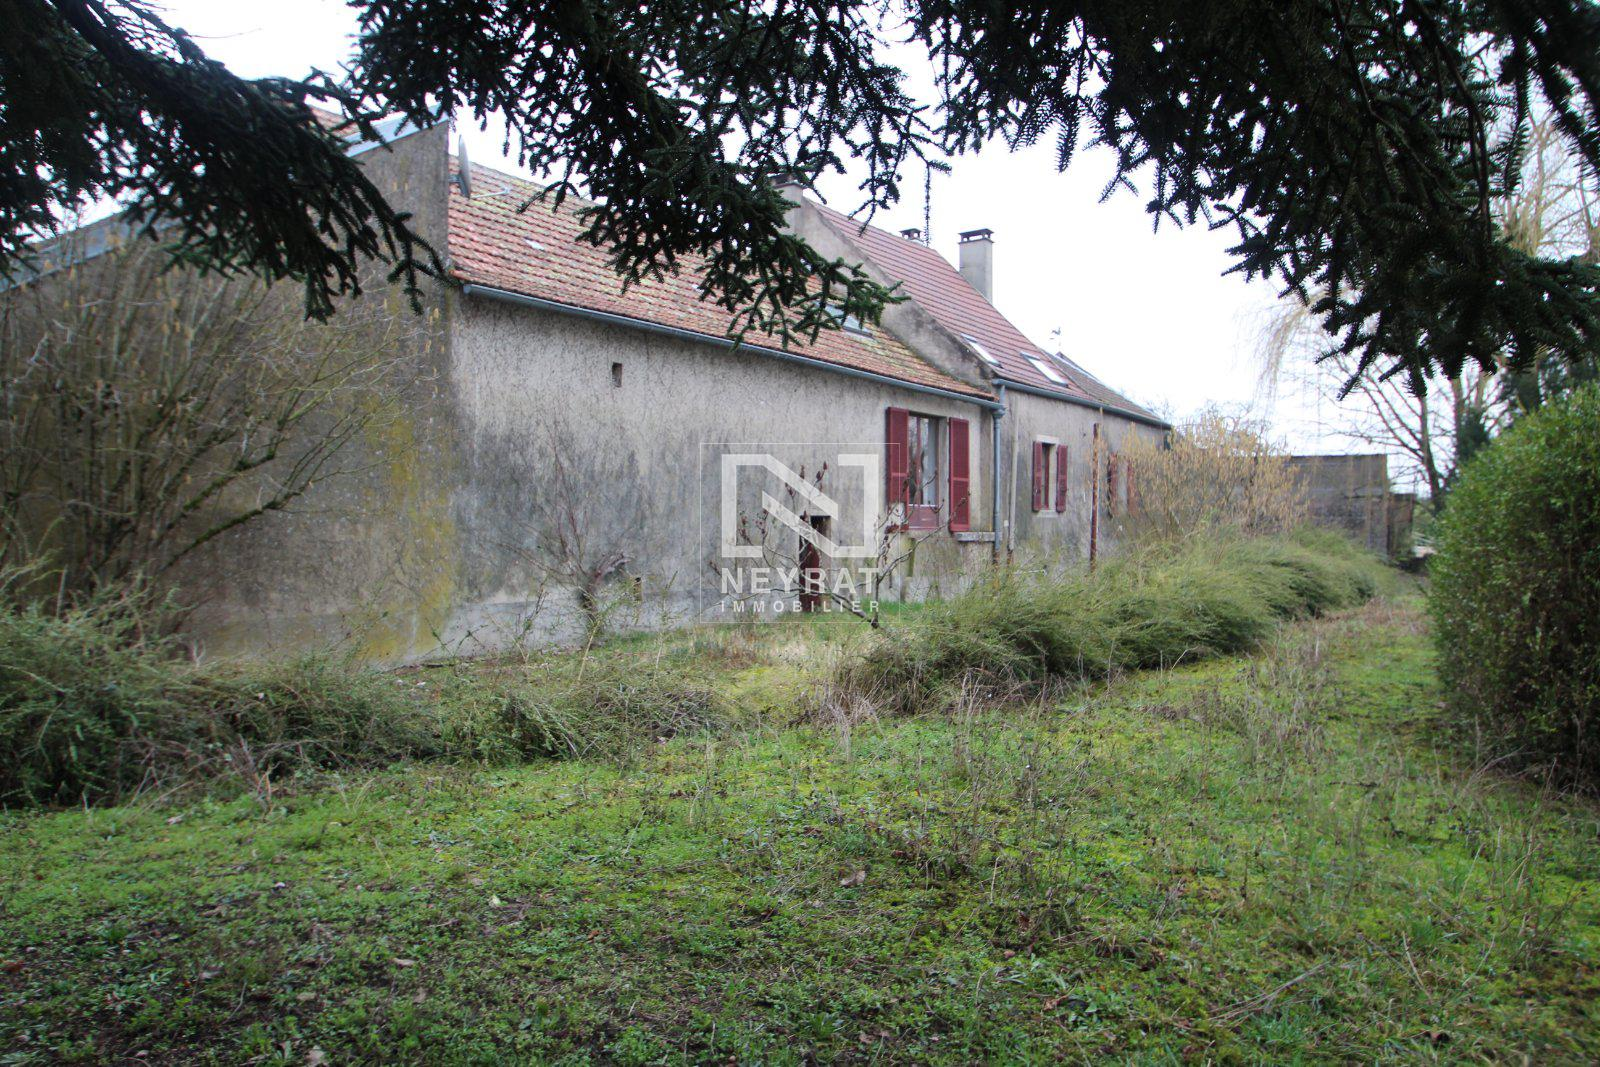 PROPRIETE A VENDRE - COMBLANCHIEN - 150 m2 - 290 000 €